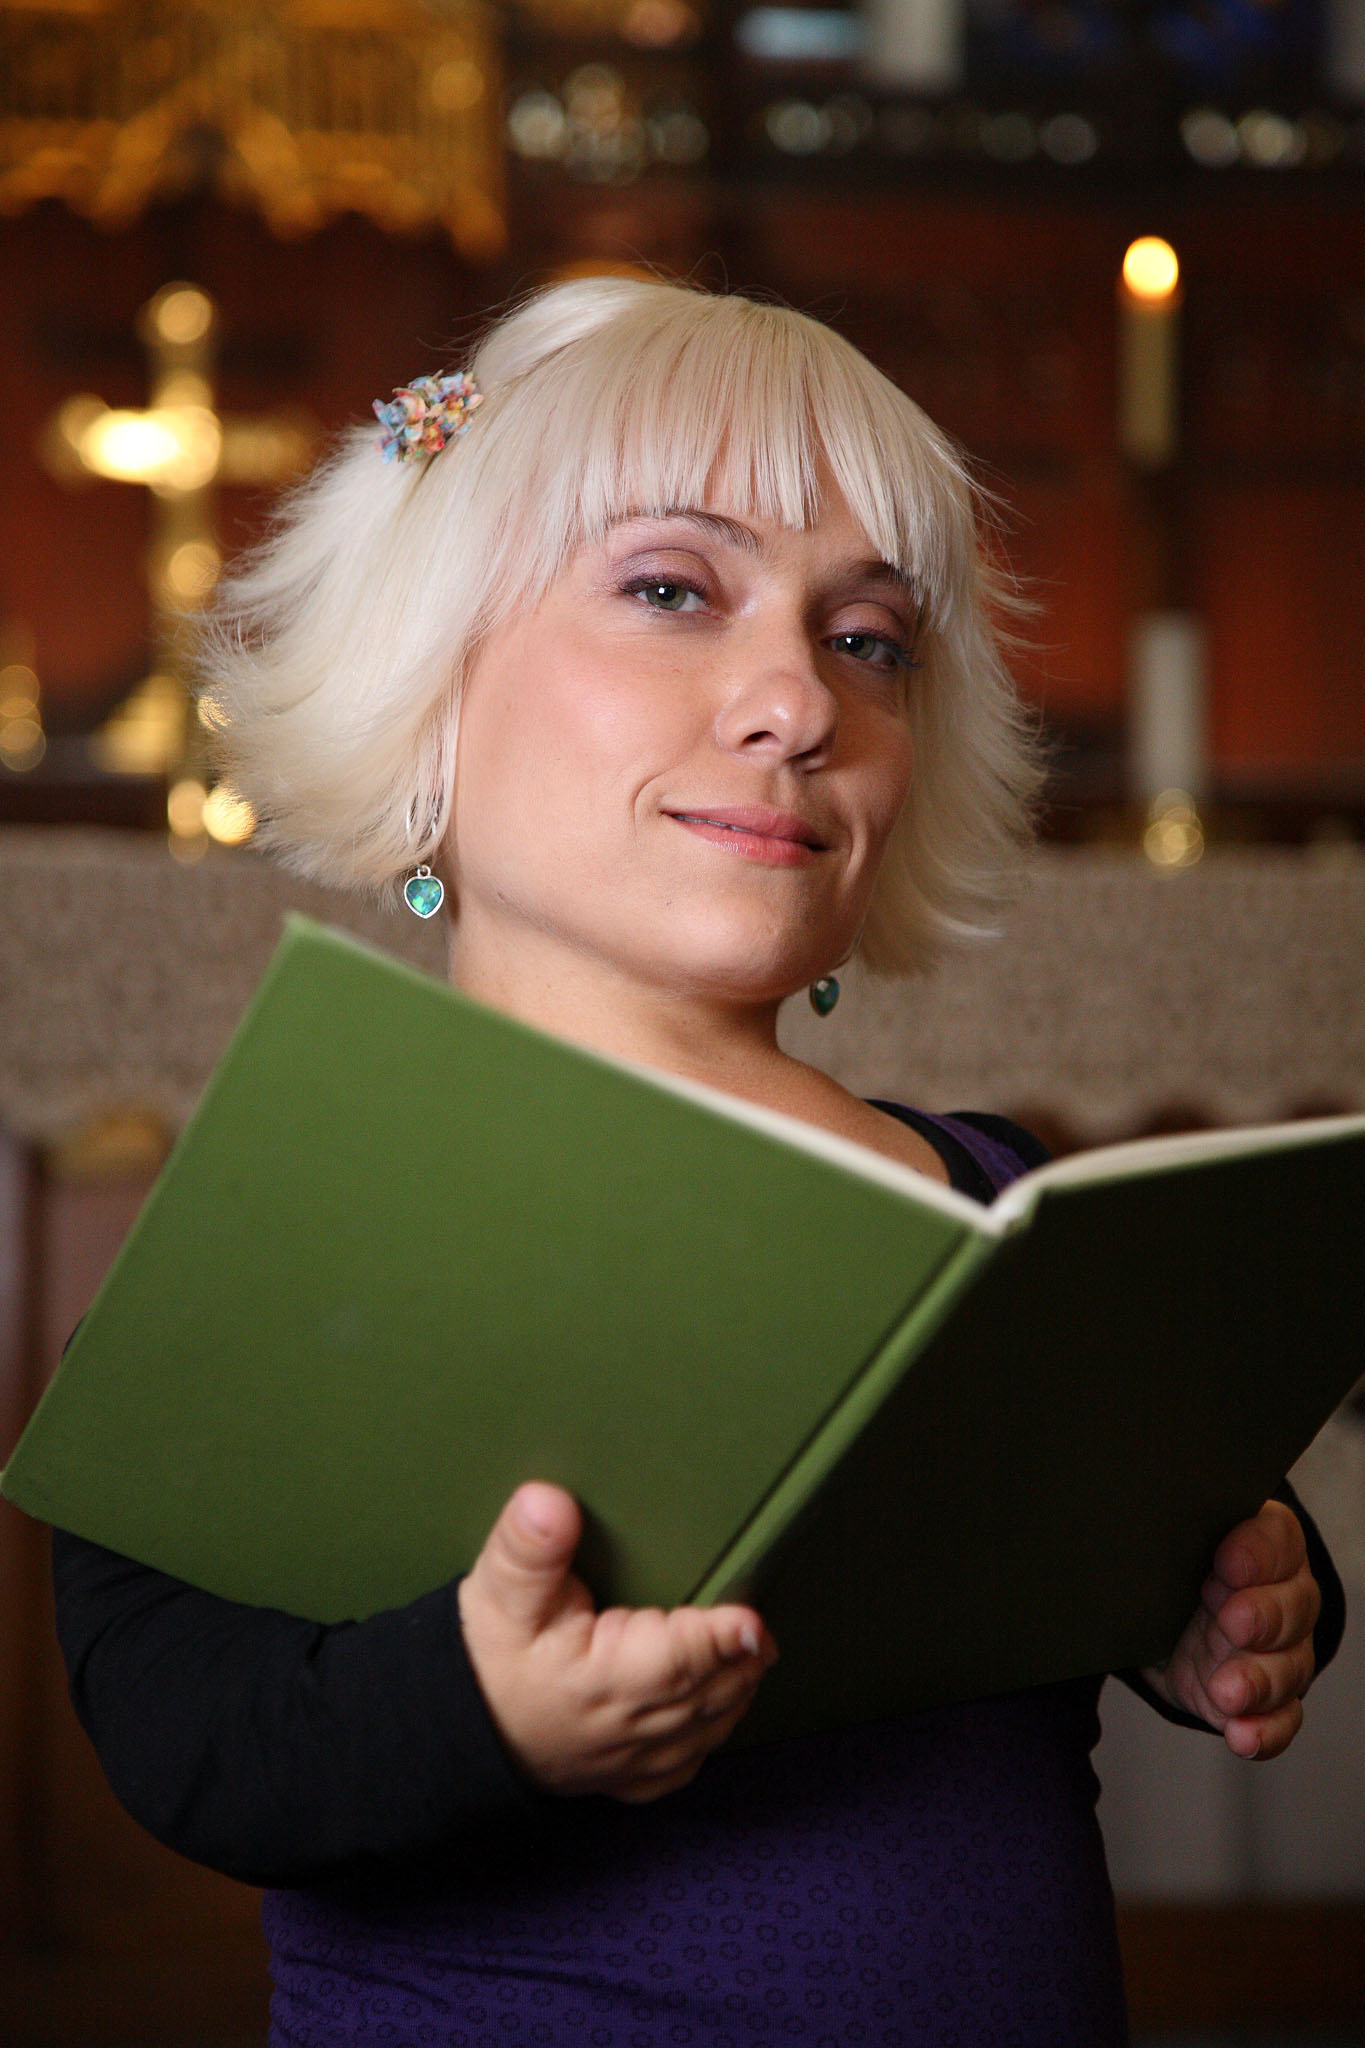 kiruna stamell weddingkiruna stamell wedding, kiruna stamell height, kiruna stamell moulin rouge, kiruna stamell husband, kiruna stamell eastenders, kiruna stamell game of thrones, kiruna stamell, kiruna stamell post office, kiruna stamell twitter, kiruna stamell gareth berliner, kiruna stamell imdb, kiruna stamell photos, kiruna stamell berliner, kiruna stamell bbc, kiruna stamell facebook, kiruna stamell instagram, kiruna stamell got to dance, kiruna stamell now, kiruna stamell married to, kiruna stamell youtube